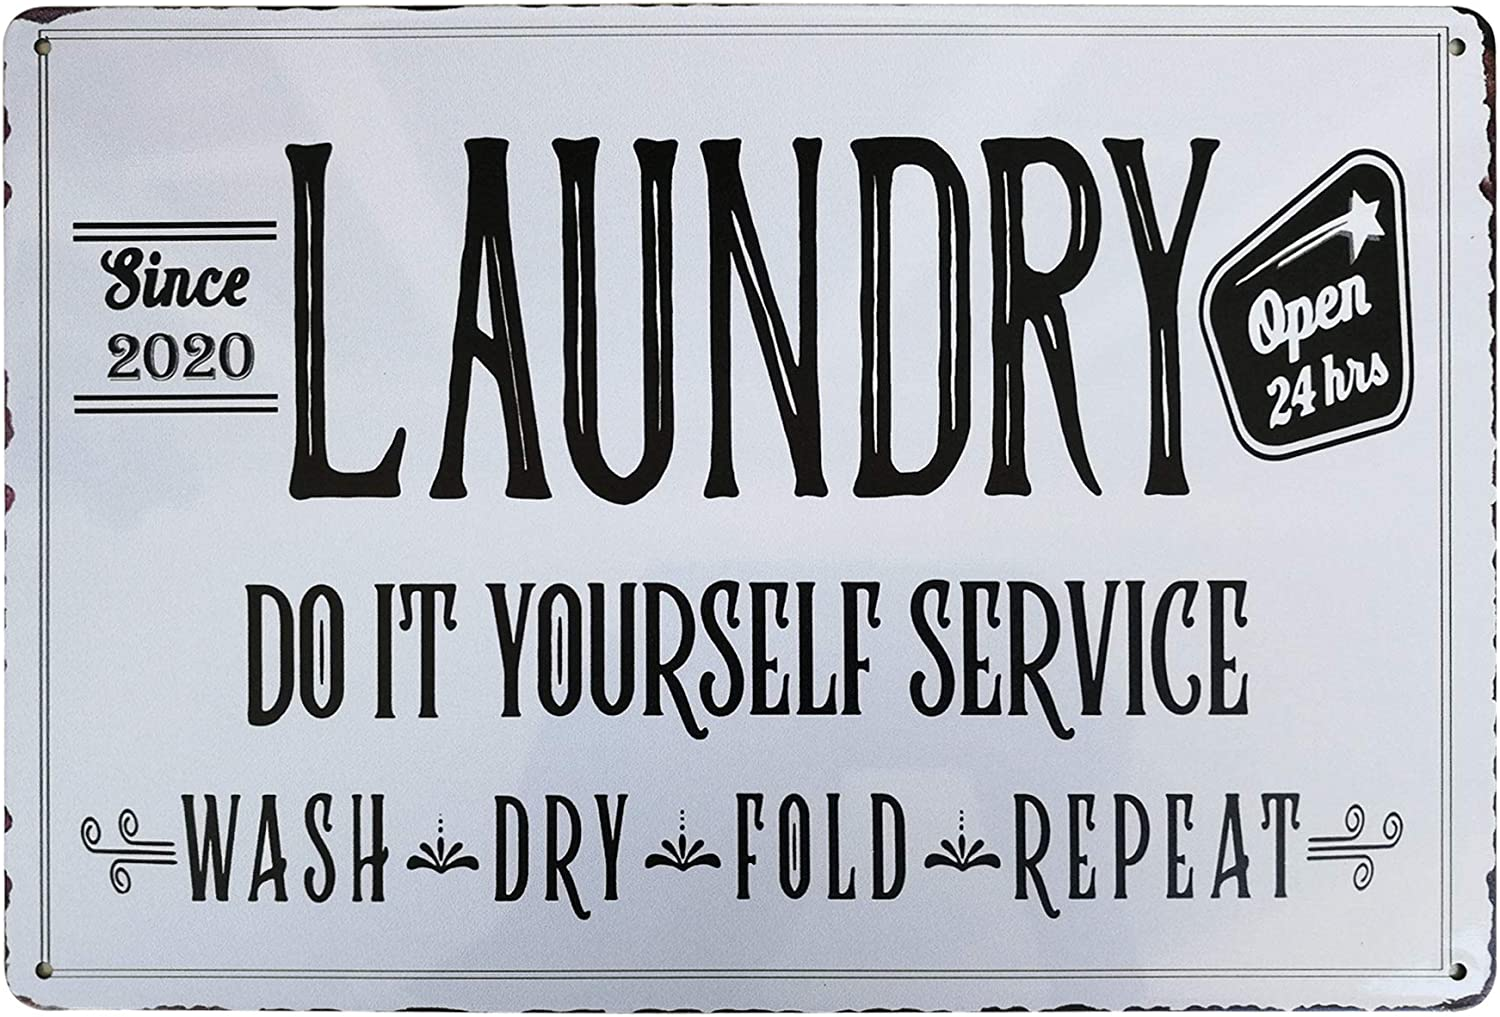 PXIYOU Wash Dry Fold Repeat Laundry Room Decor Vintage Metal Sign Home Bathroom Decoration Wash Room Signs Country Home Decor 8X12Inch